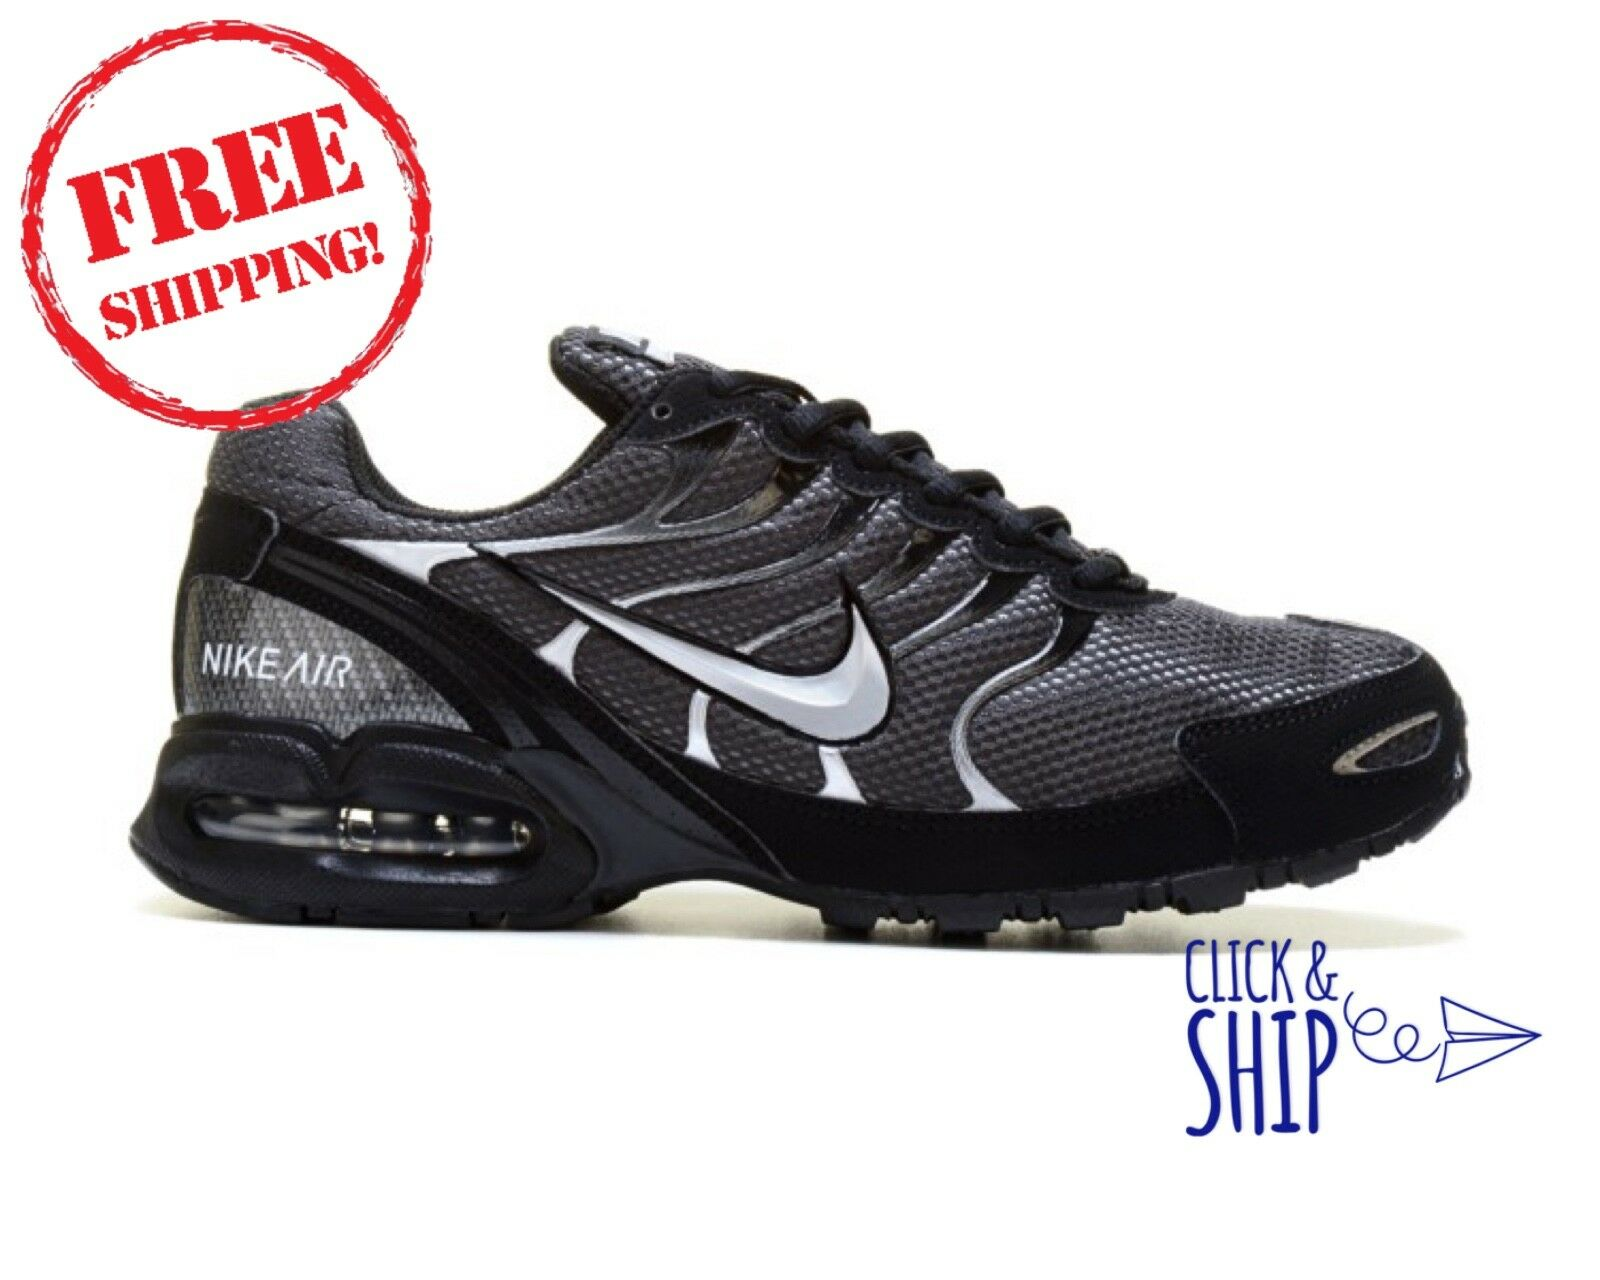 90e0ddf71cf Nike Air Max Torch 4 Running Cross Training shoes Sneakers MENS Anthracite  Silve